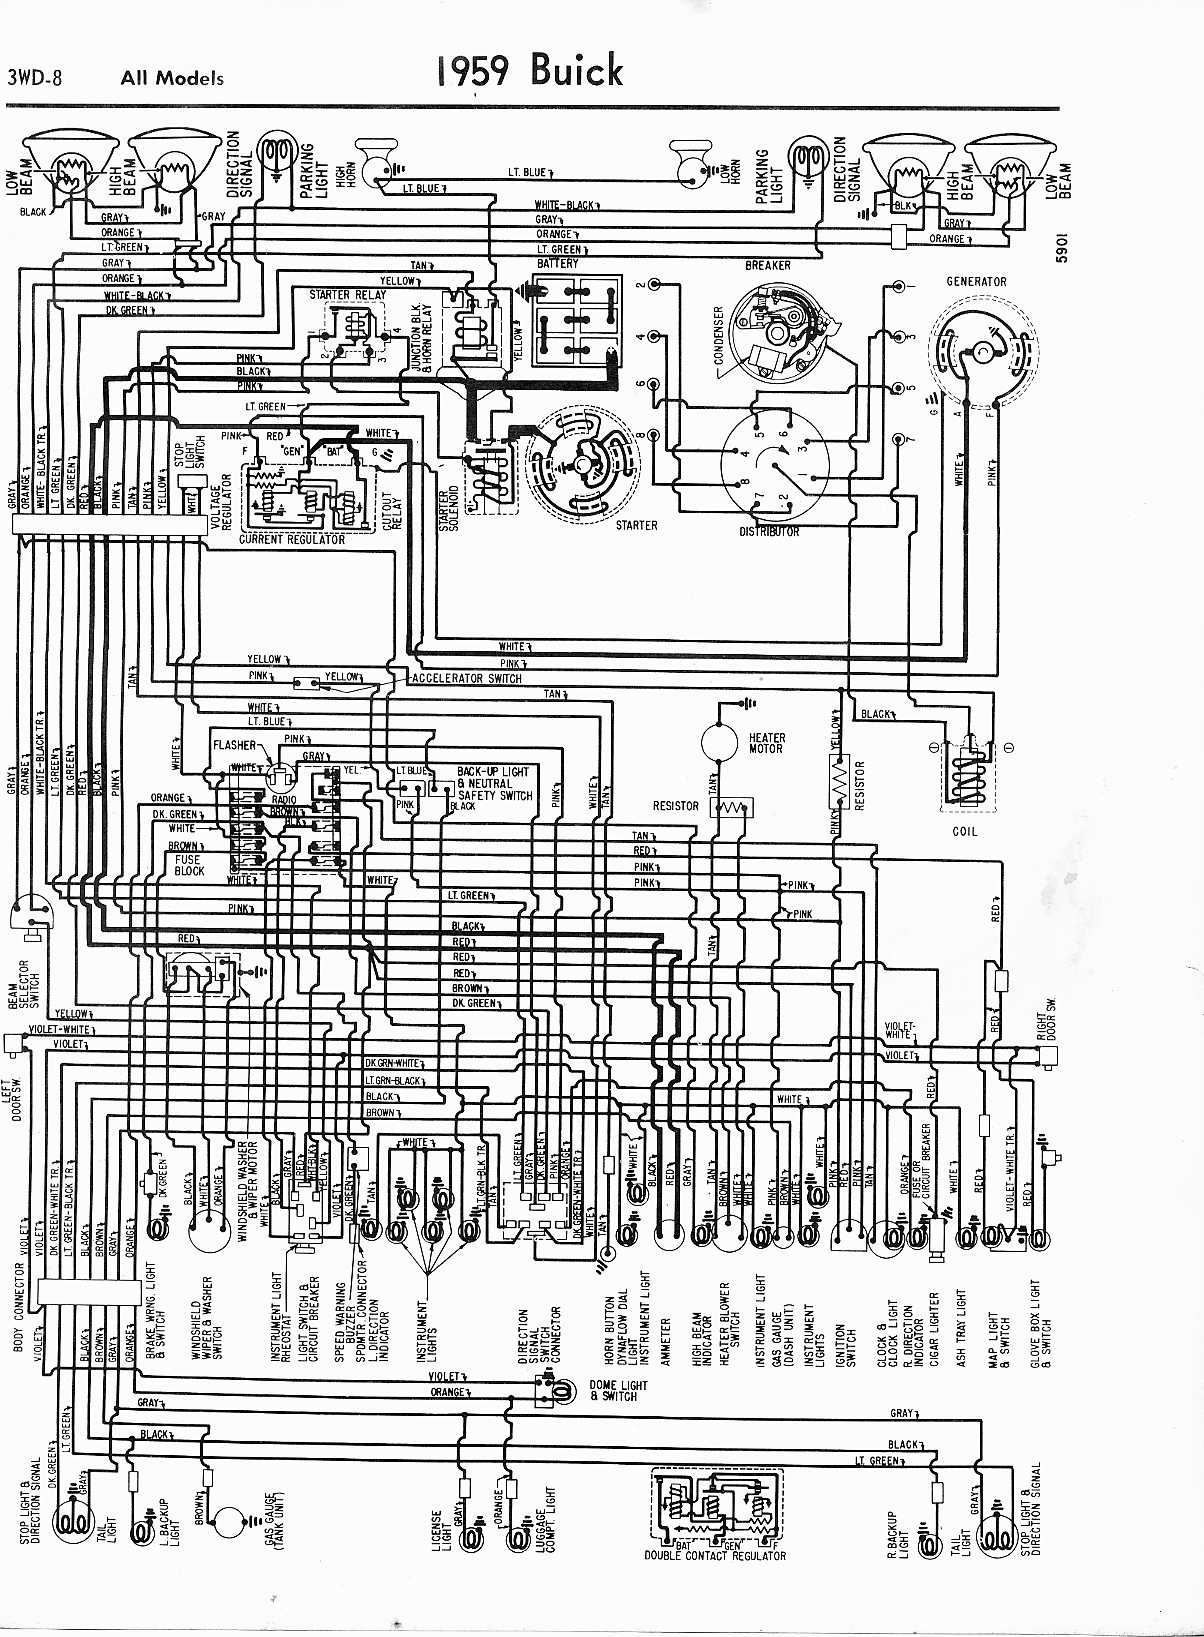 1997 acura integra radio wiring diagram 2001 honda civic electrical 95 buick regal get free image about